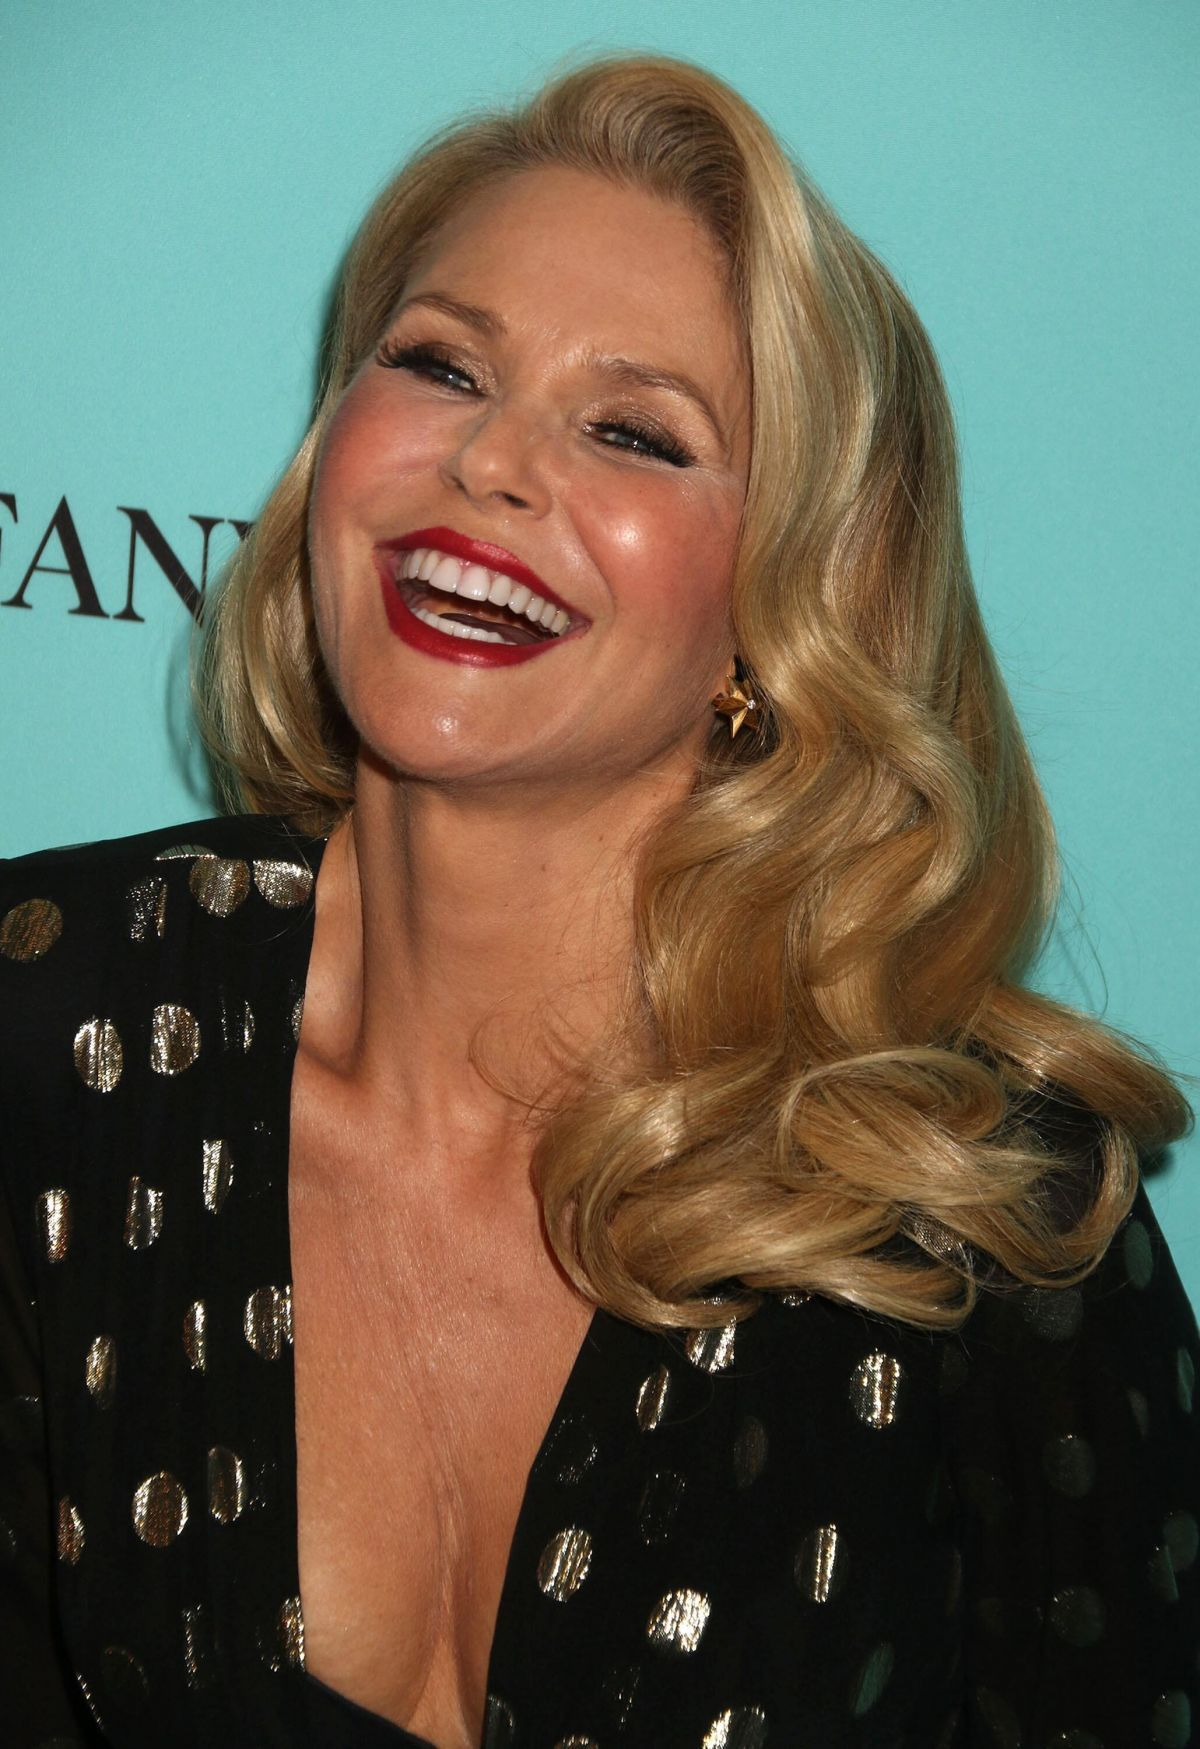 Christie Brinkley At 150 Years of Women, Fashion and New York Celebration in NY   christie-brinkley-at-150-years-of-women-fashion-and-new-york-celebration-in-ny_6